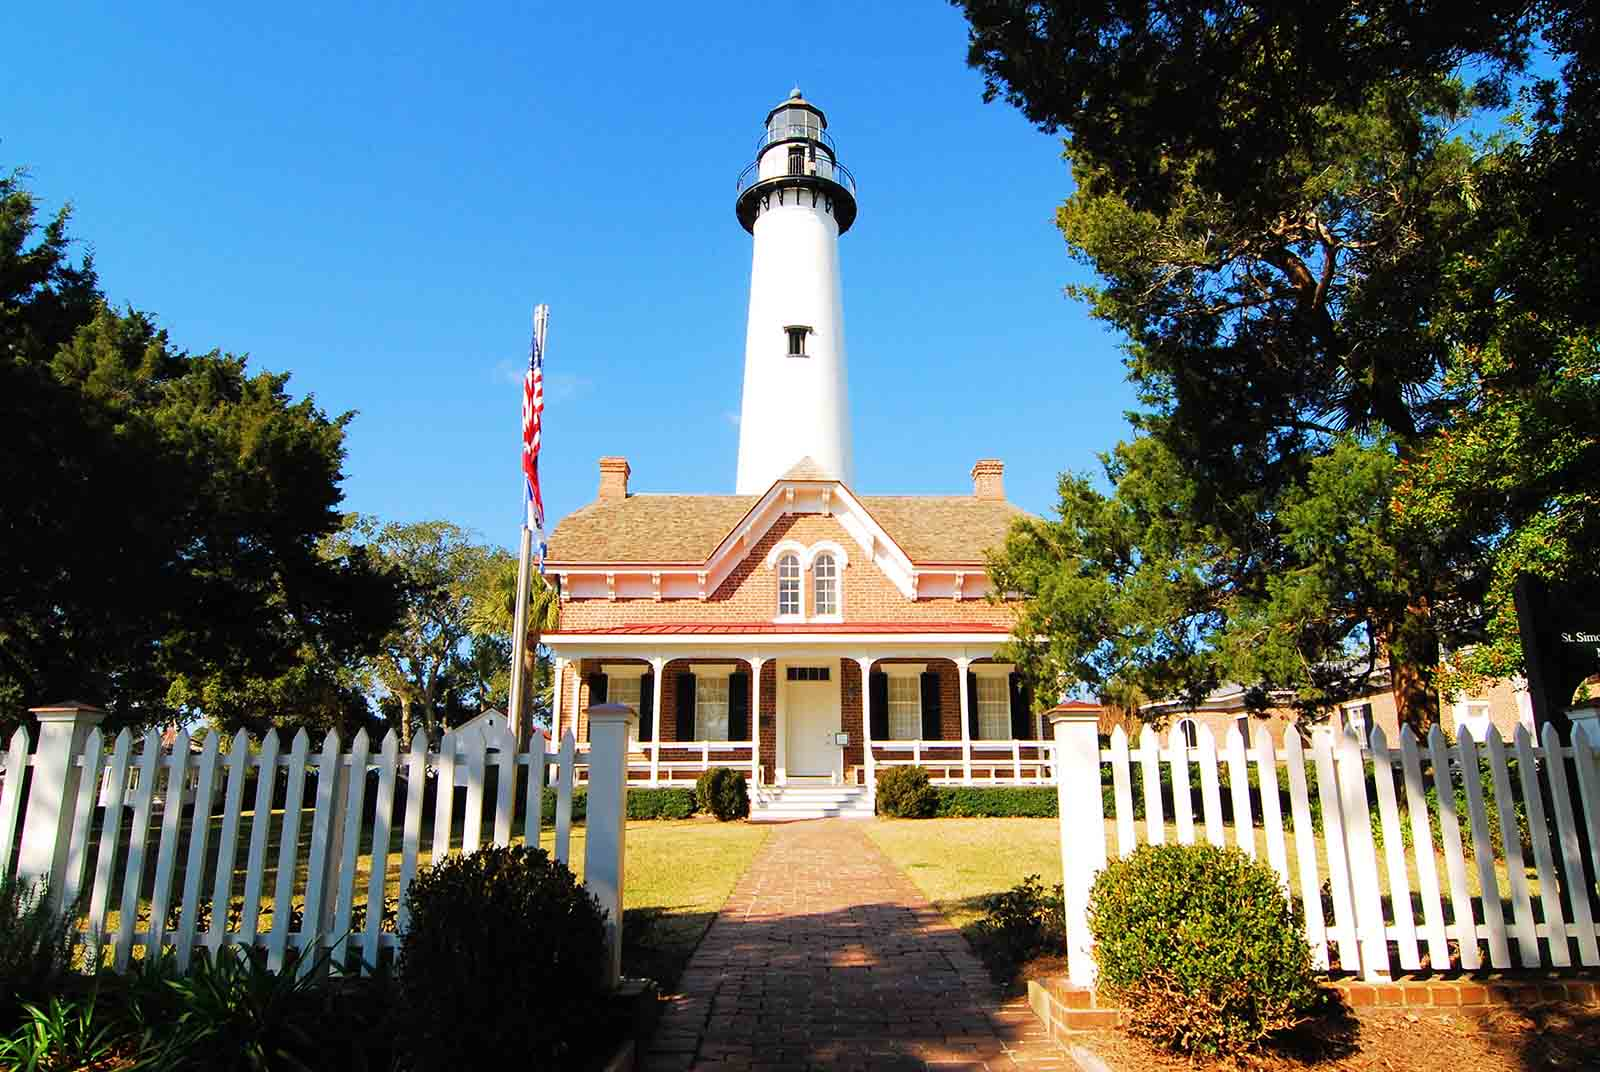 https://authenticamerica.com/wp-content/uploads/formidable/8/St-Simons-Lighthouse-1600x1072-1-150x150.jpg